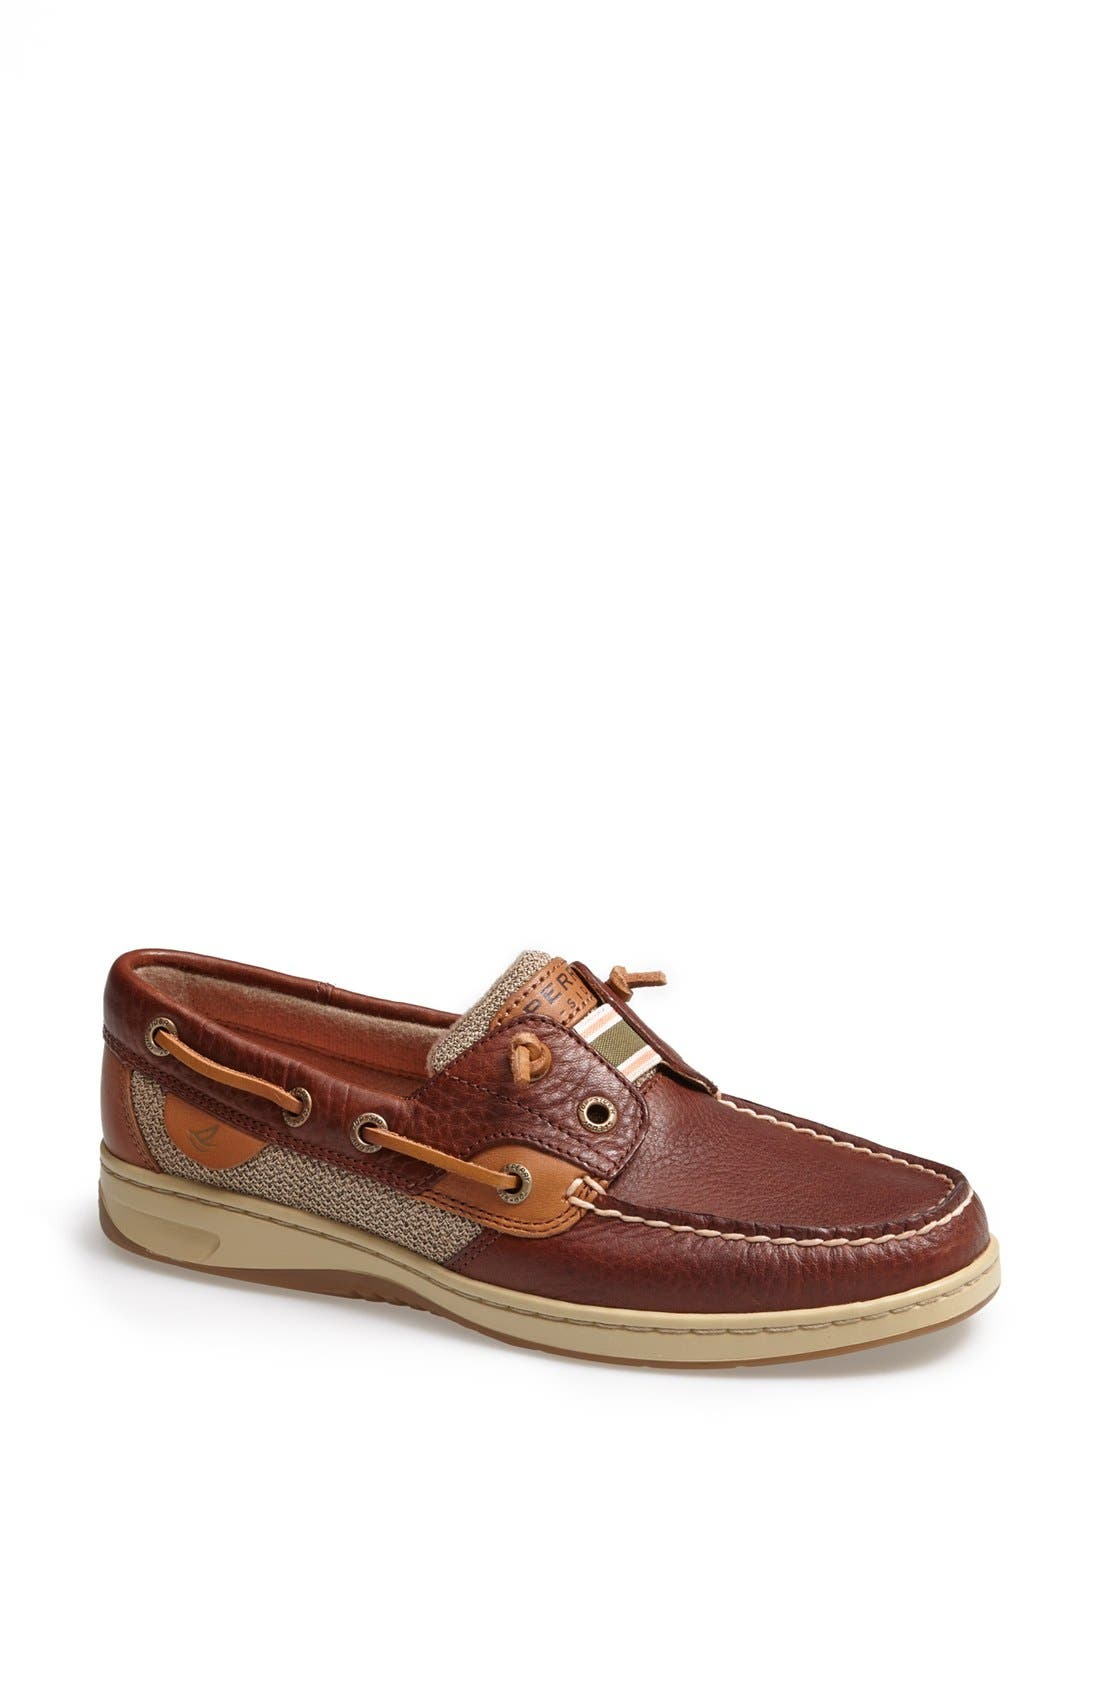 Main Image - Sperry 'Rainbowfish' Boat Shoe